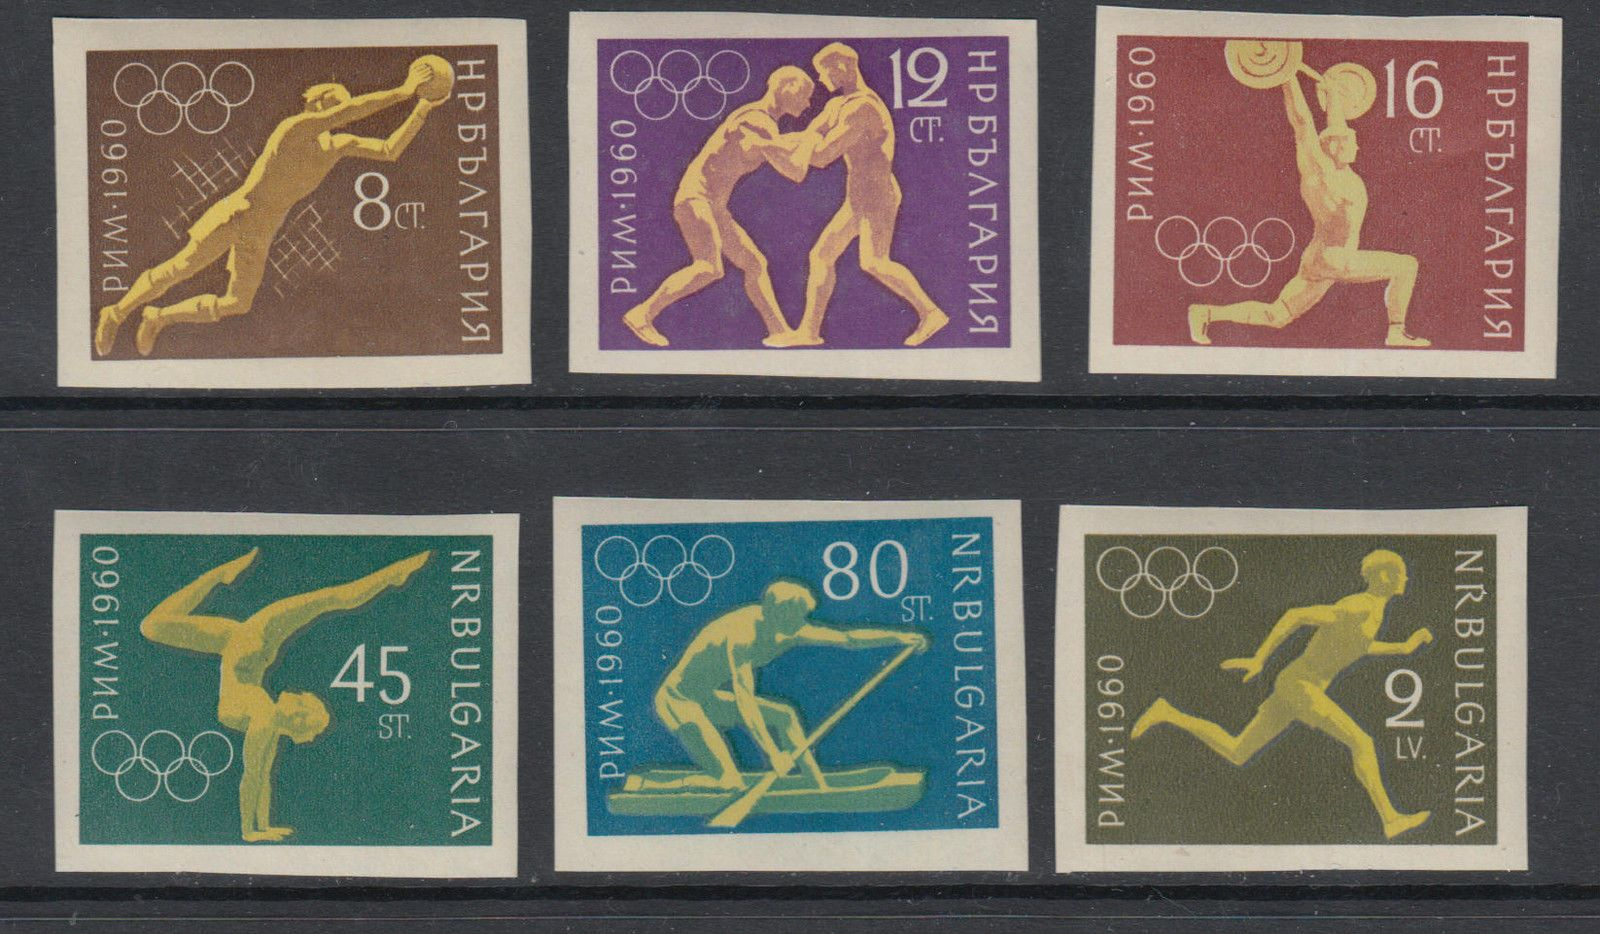 XG B919 Bulgaria 1960 Olympic Games Italy Rome '60 Football Imperf MNH Set | eBay